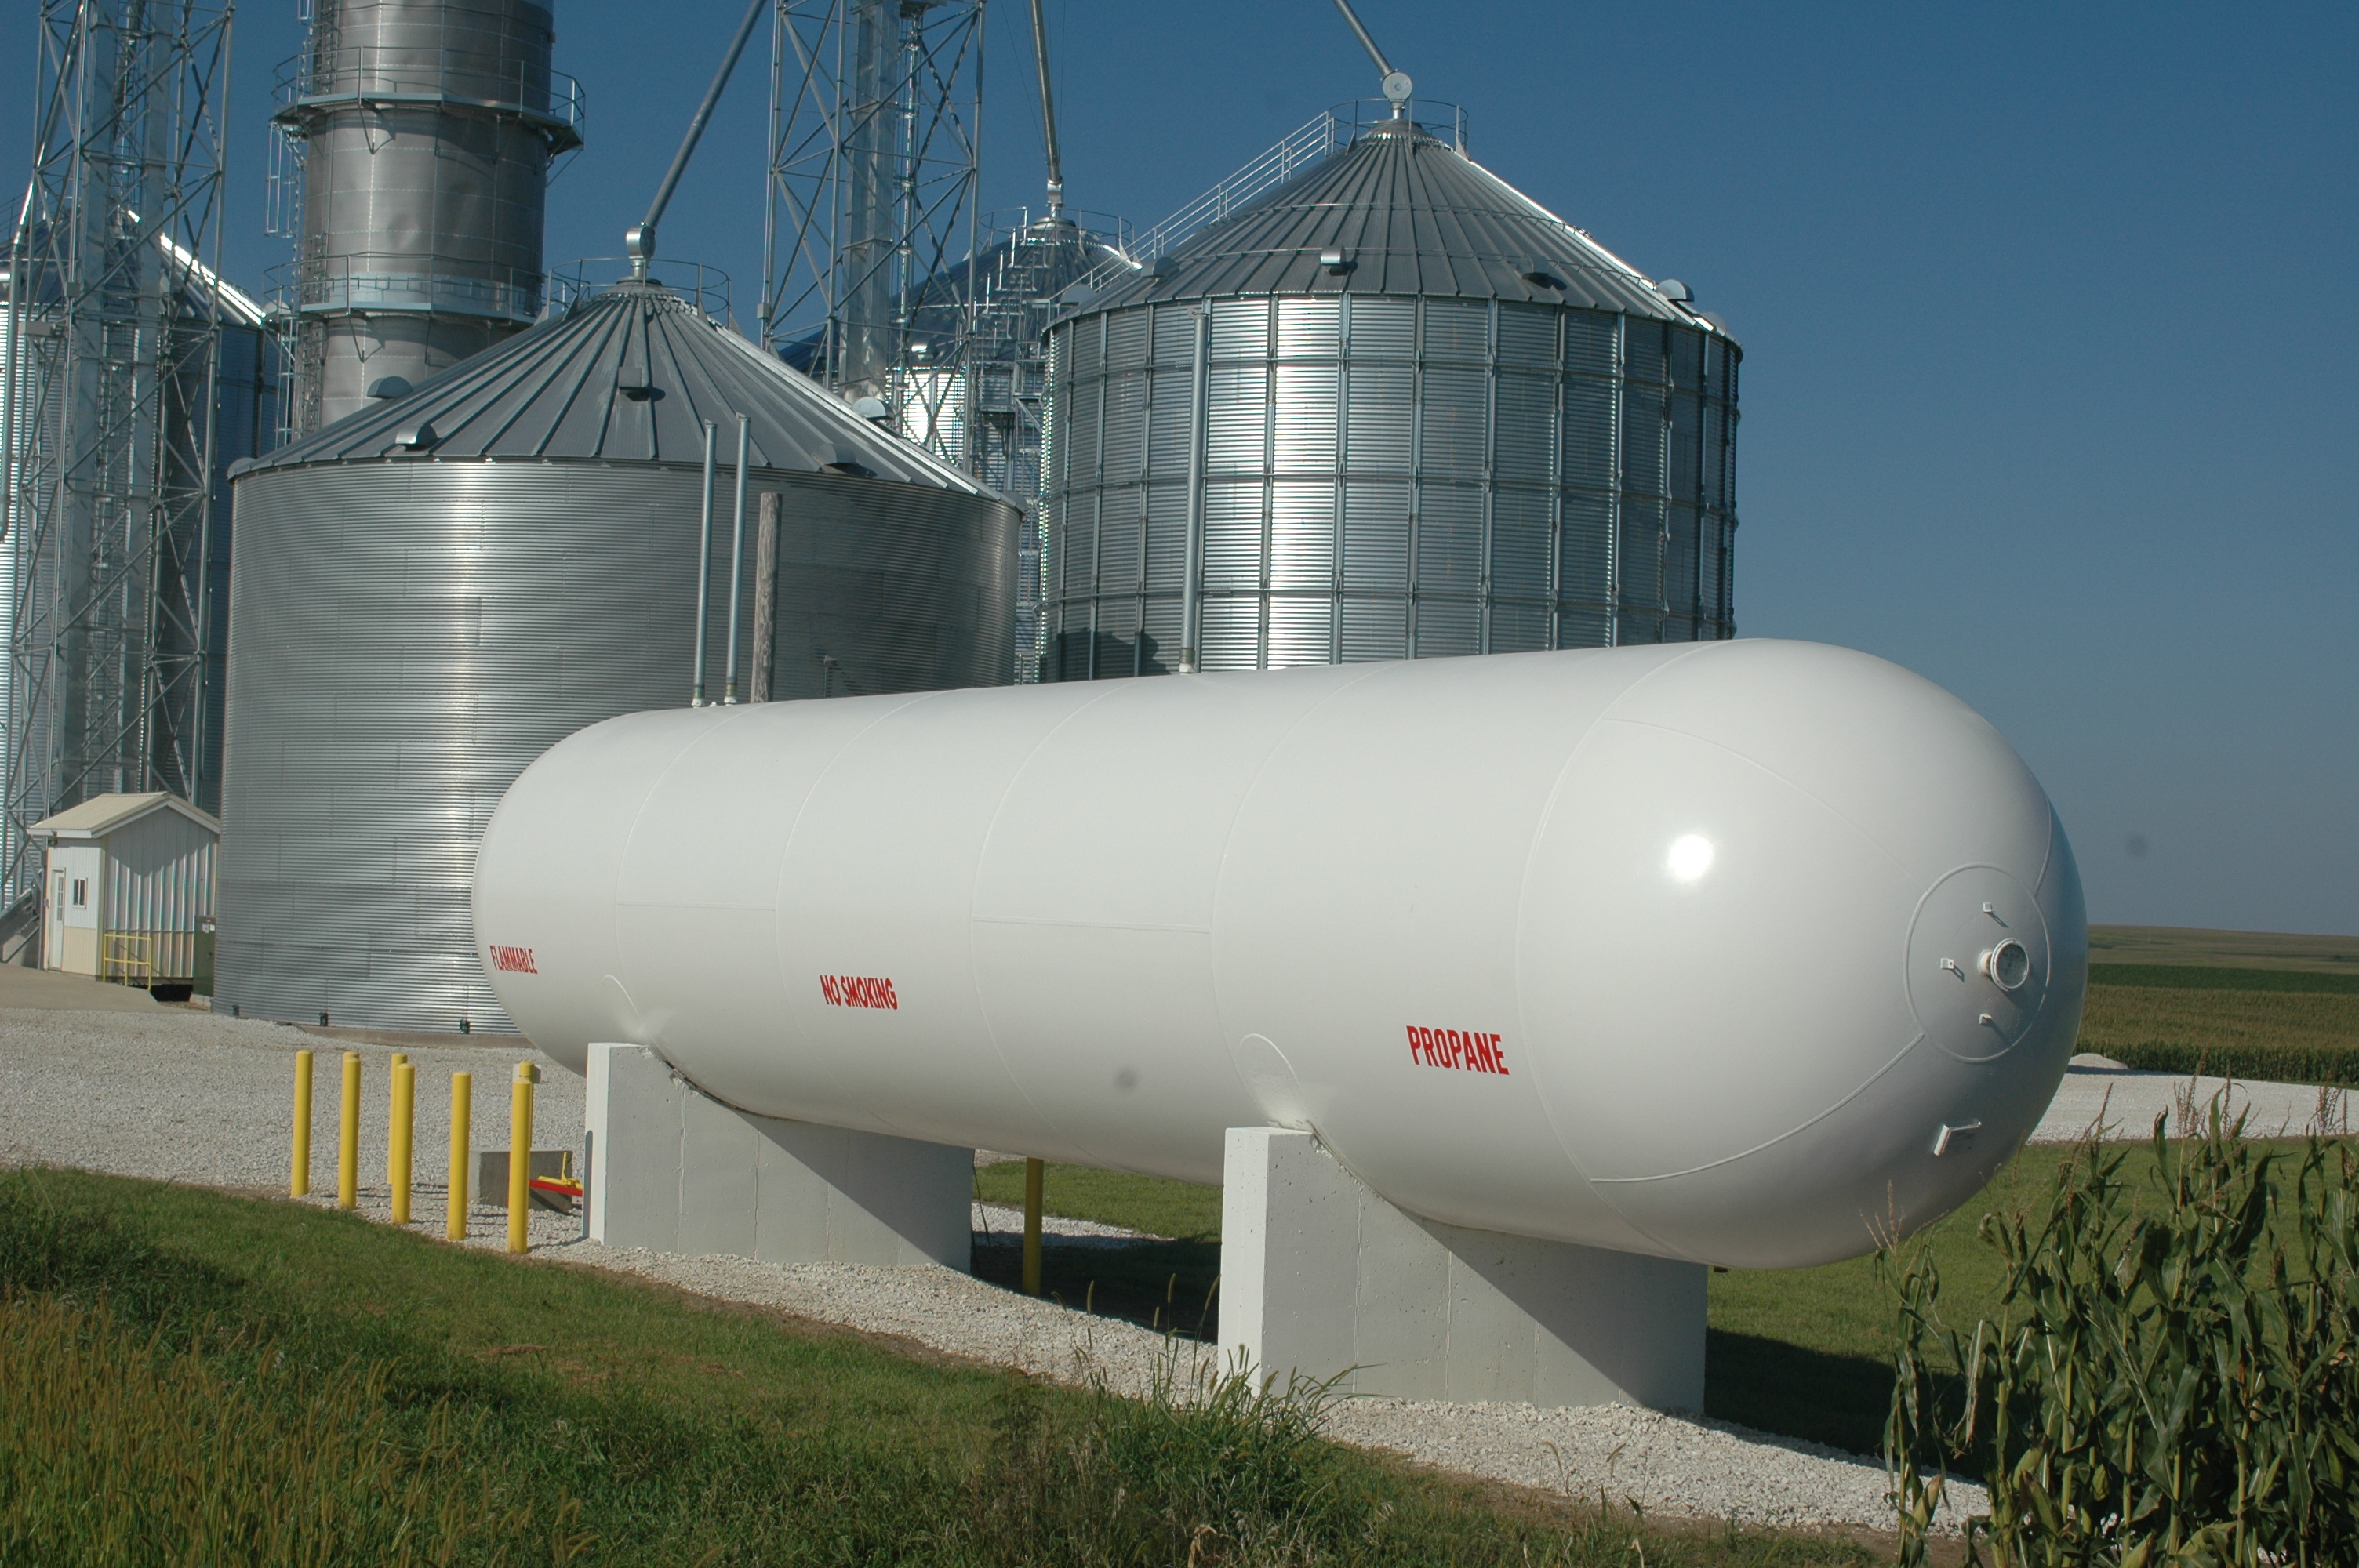 Farmers have invested in larger on-farm propane storage facilities to avoid issues with the delivery of the product as well as to receive volume discounts. (DTN/Progressive Farmer photo by Dan Miller)